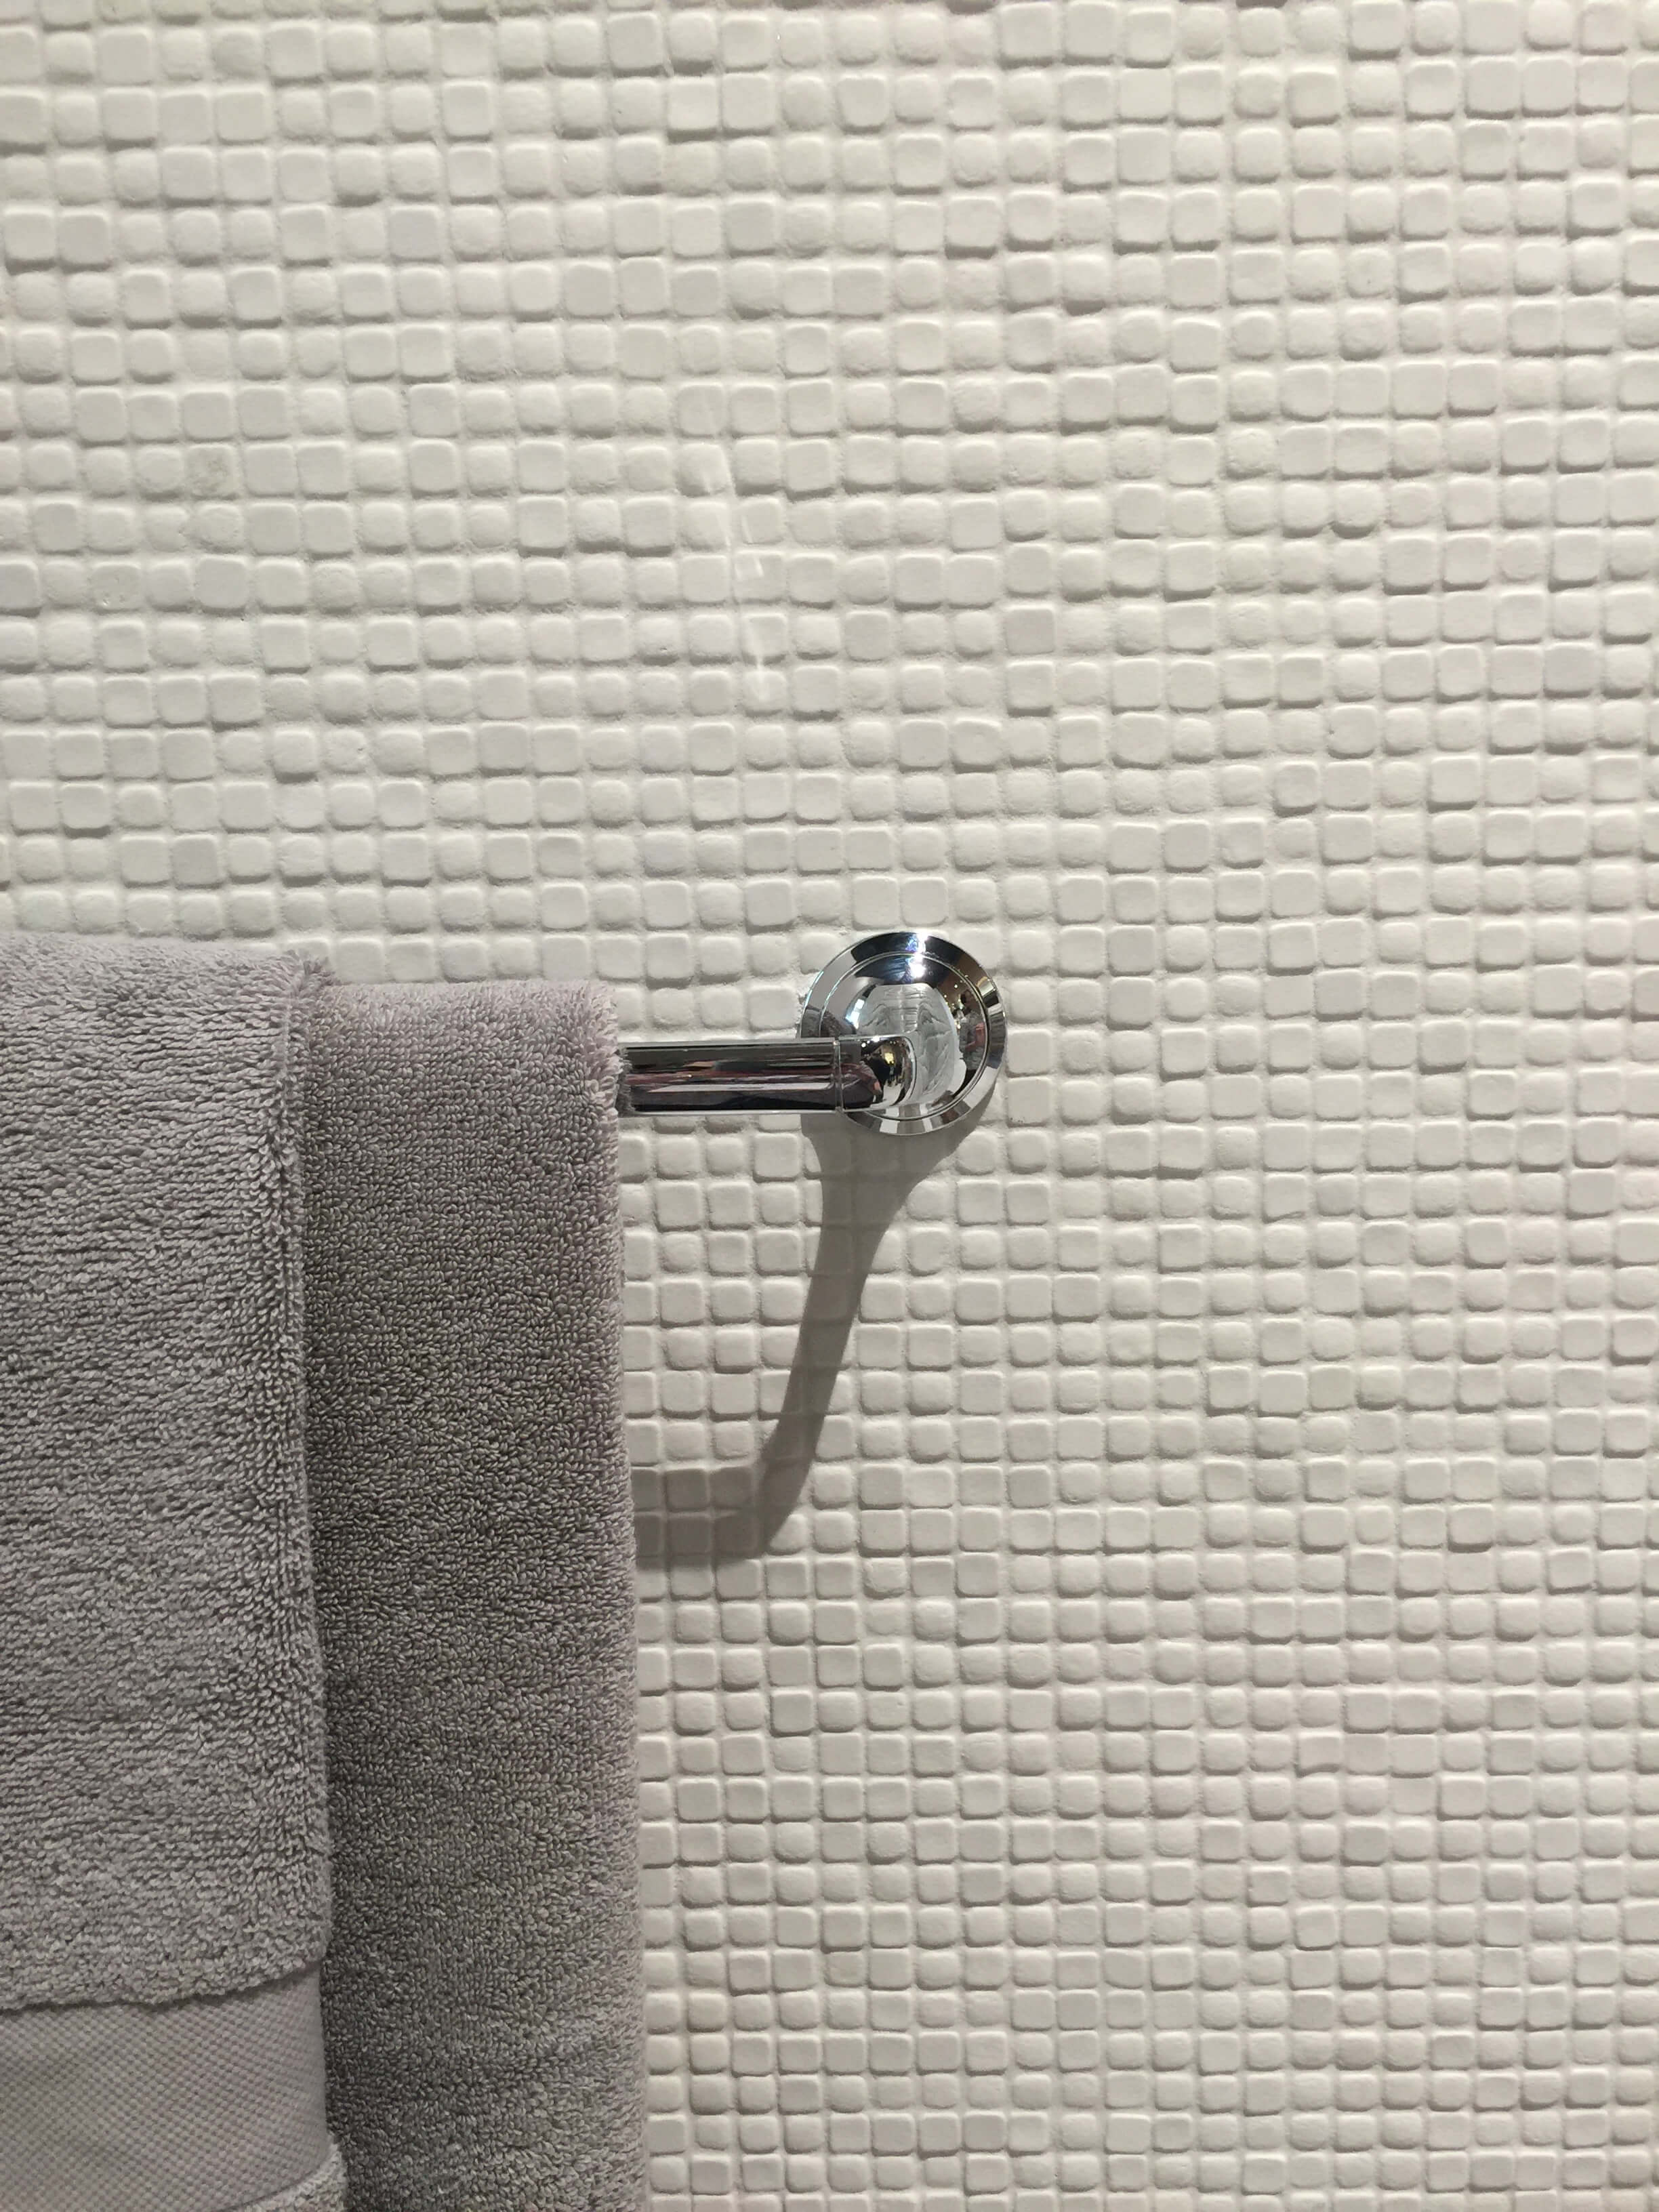 Tiny mosaic tiles for a lovely tone on tone, textured look. #tile #mosaictile